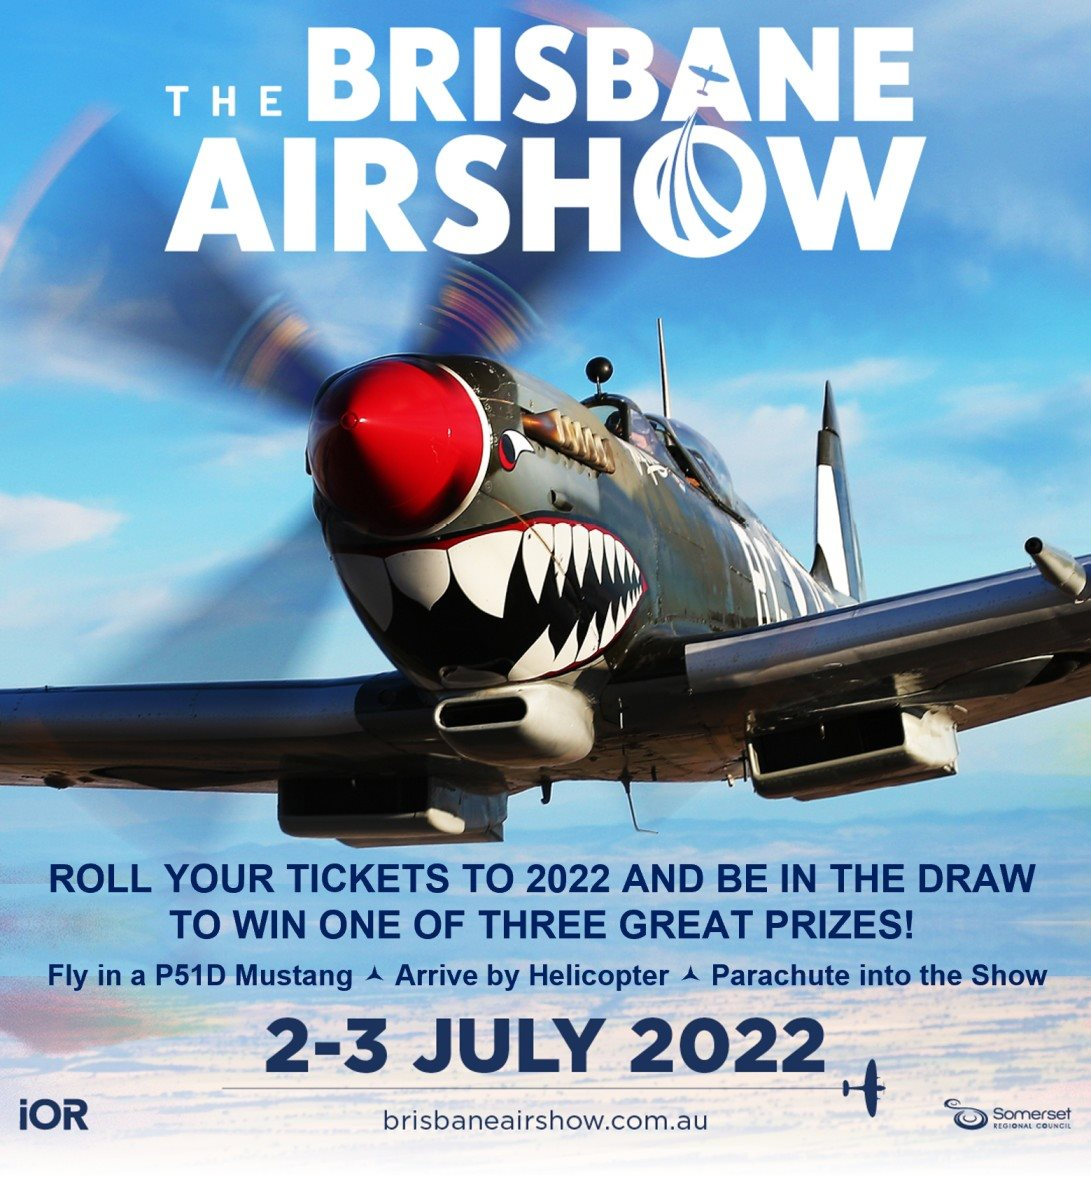 Brisbane Airshow Competition Spitfire Image